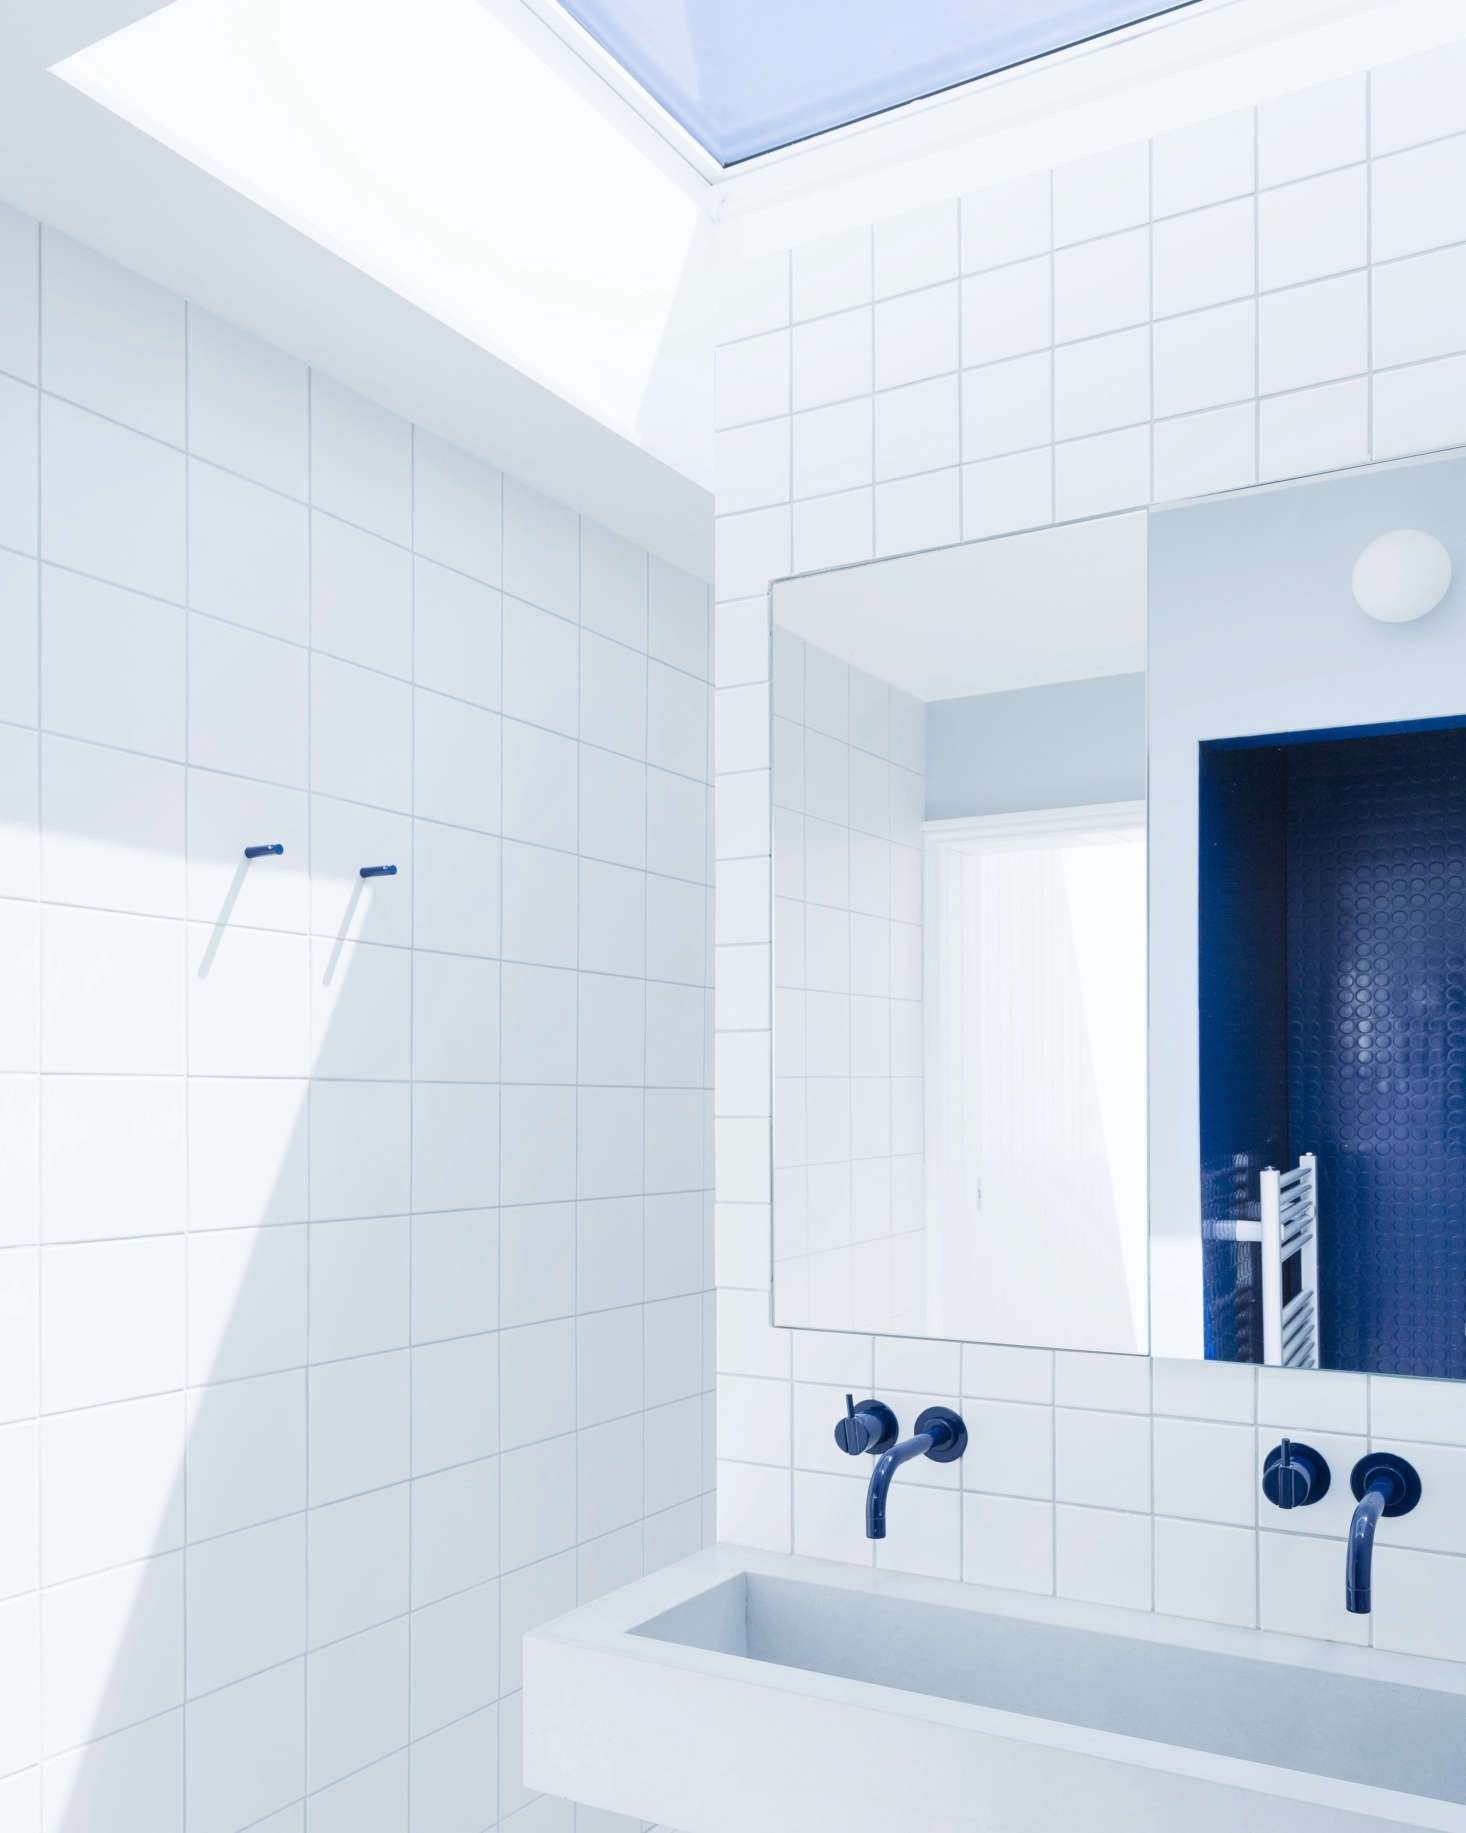 The room is divided into two halves by a tiled walk-around wall with a cast concrete sink made by the contractor, who also fabricated the medicine cabinets (reflected in the right is the WC clad in royal blue rubber flooring).